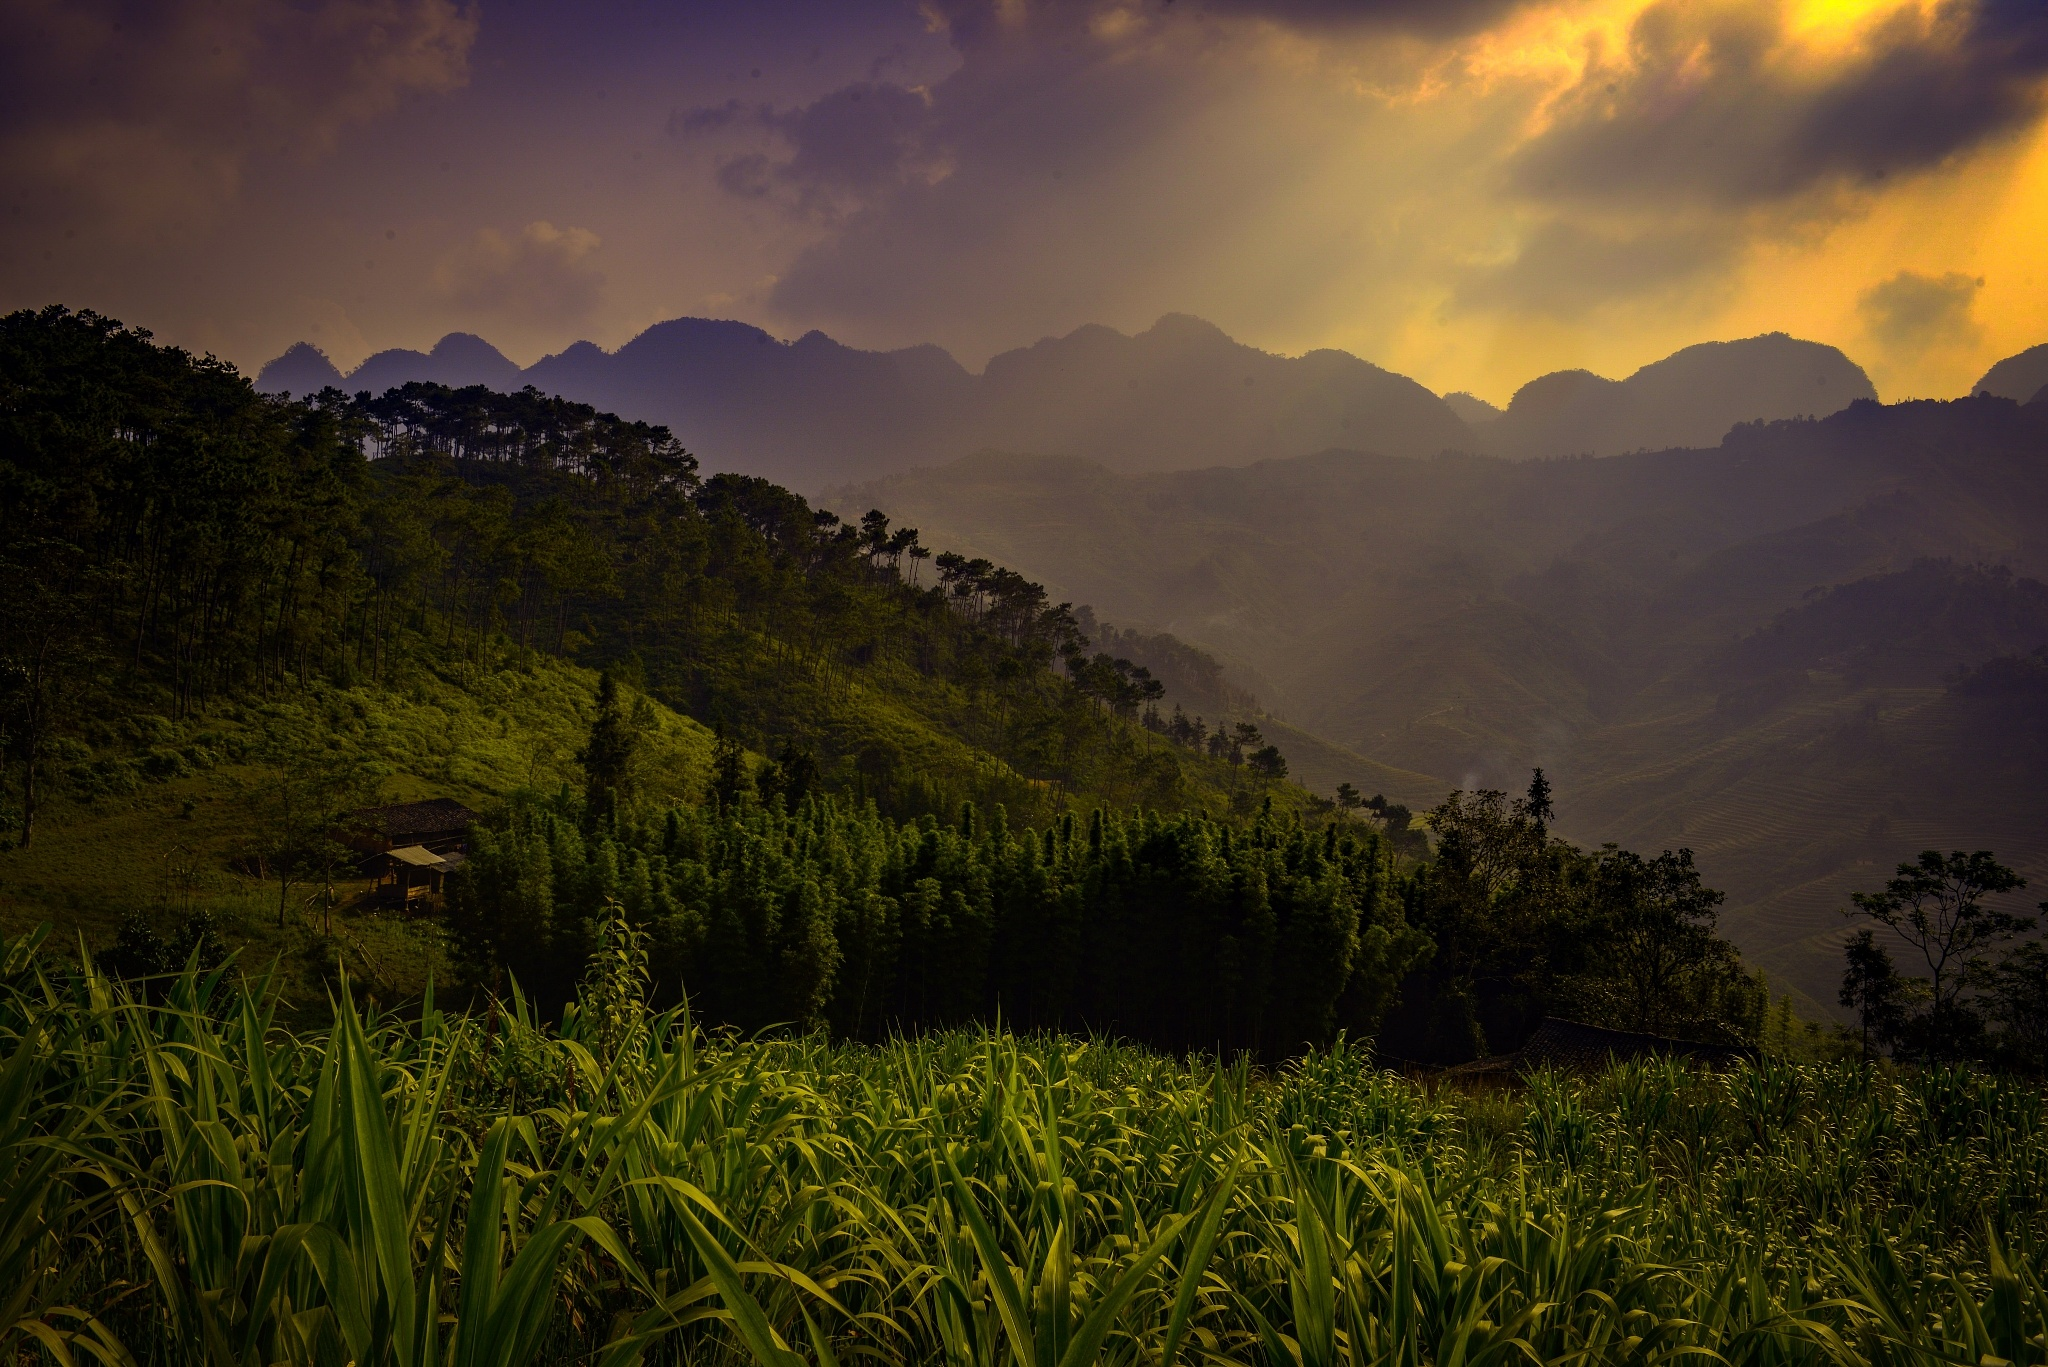 A mountain view by Cuong NM